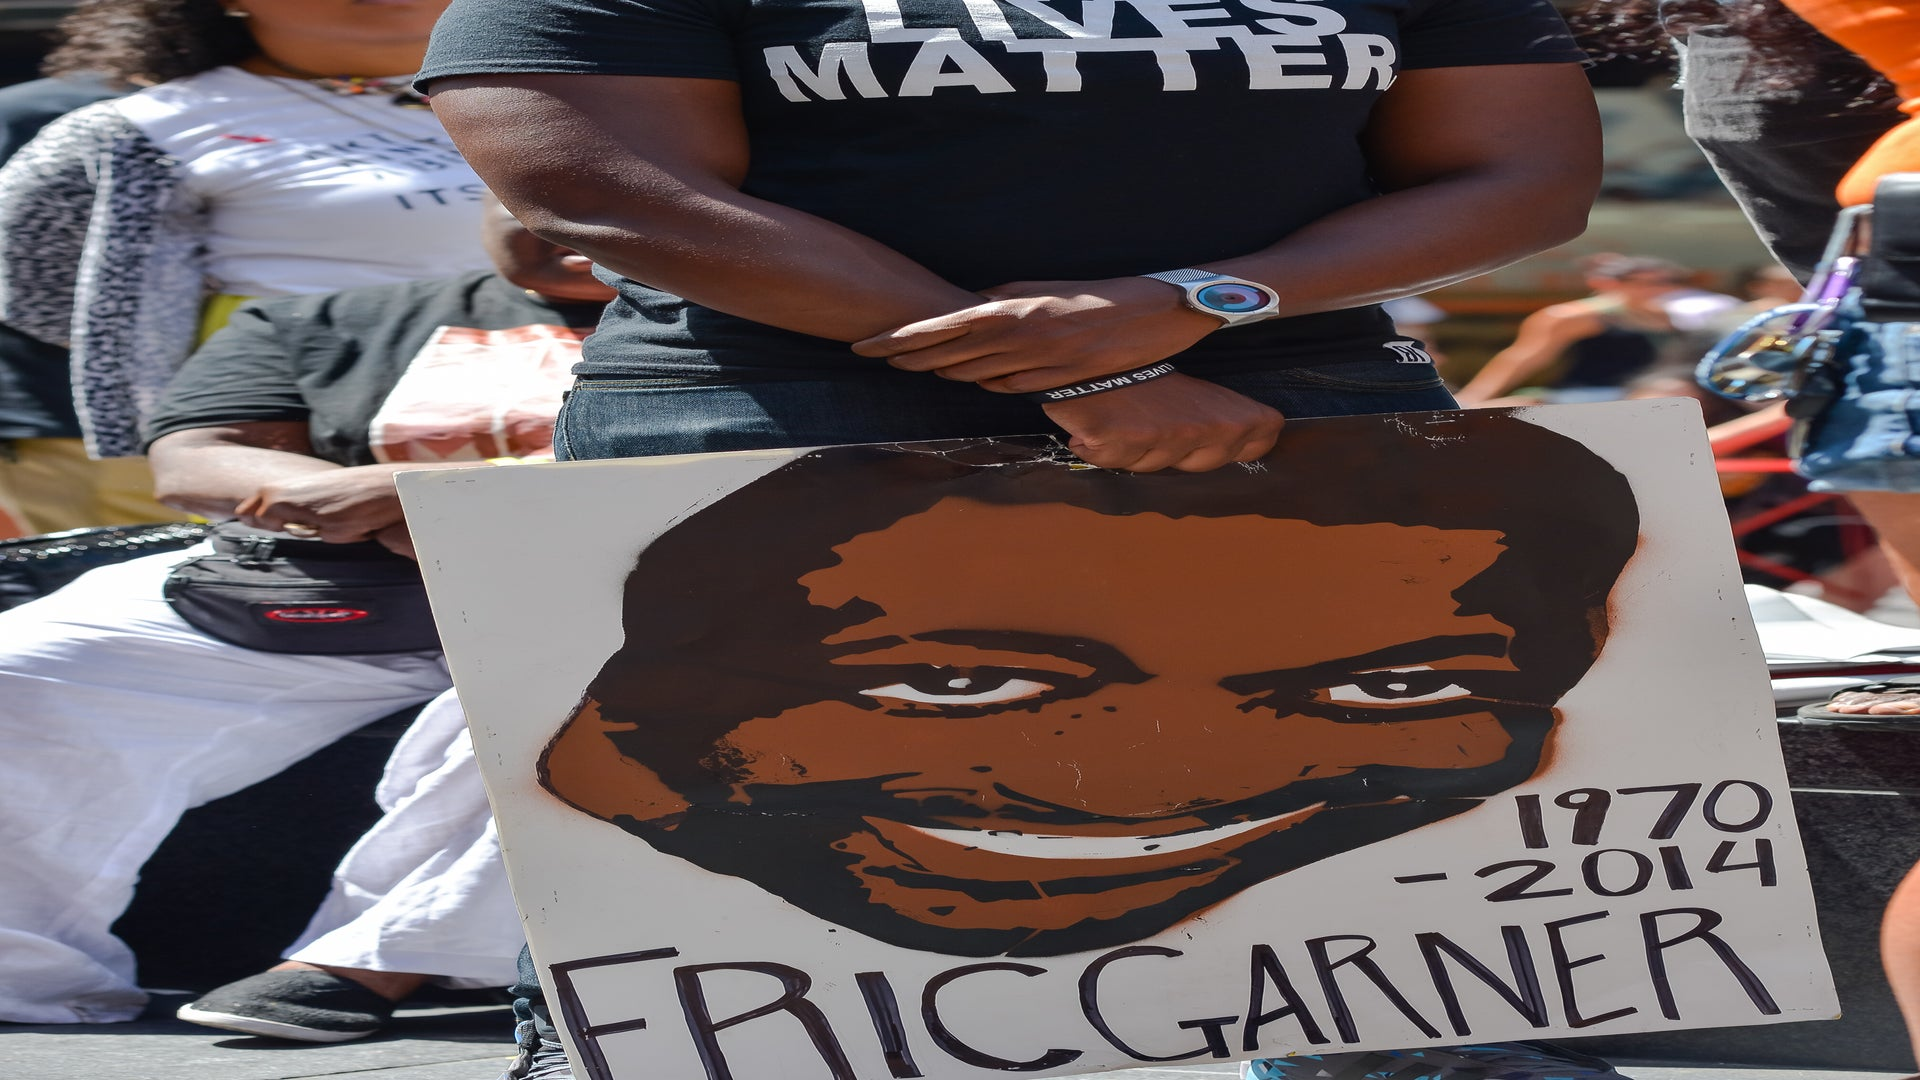 Justice Department May Pursue Charges Against NYPD Officer Who Killed Eric Garner